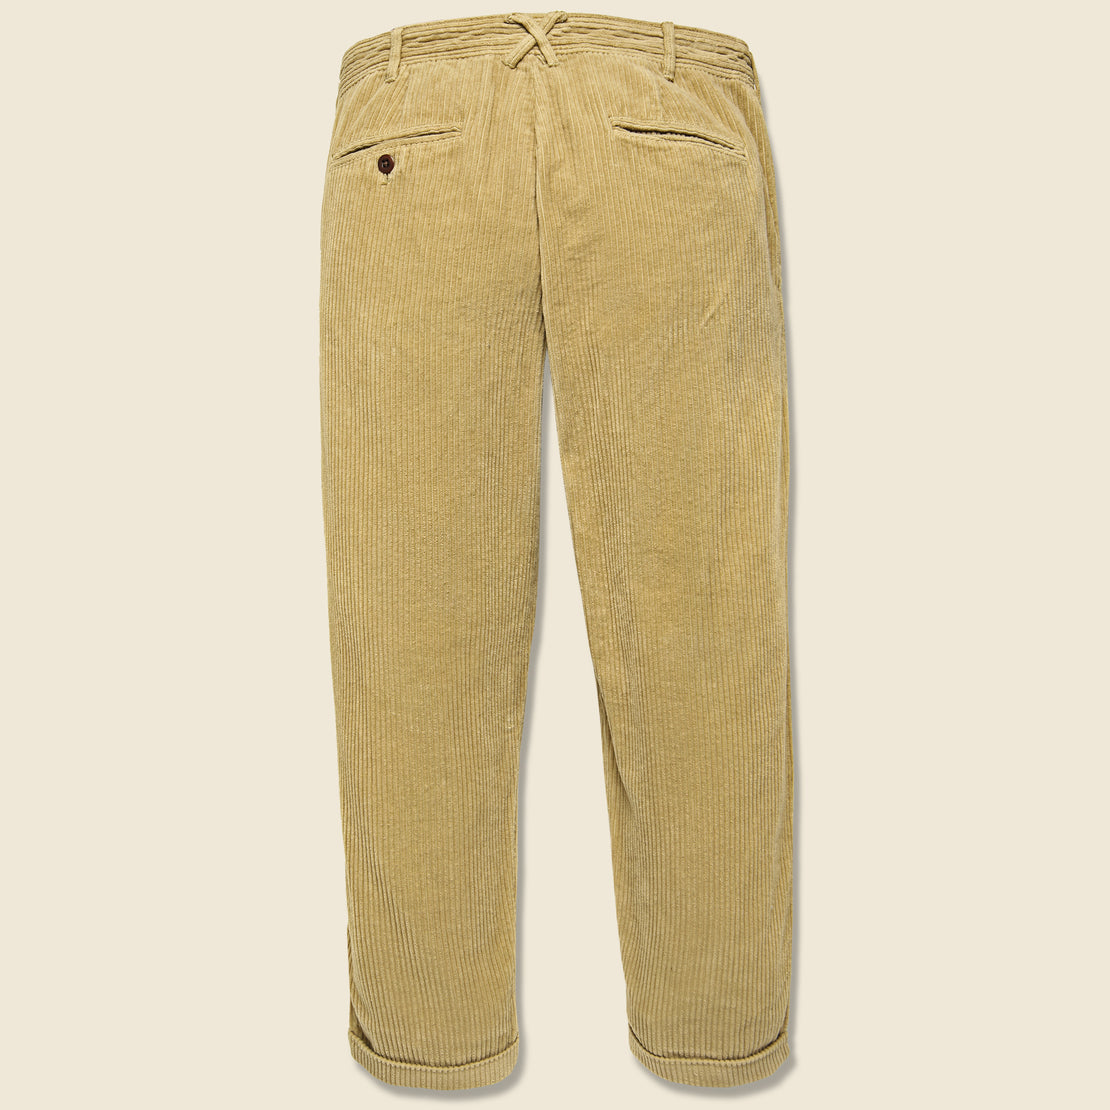 Corduroy Pleated Pant - Khaki